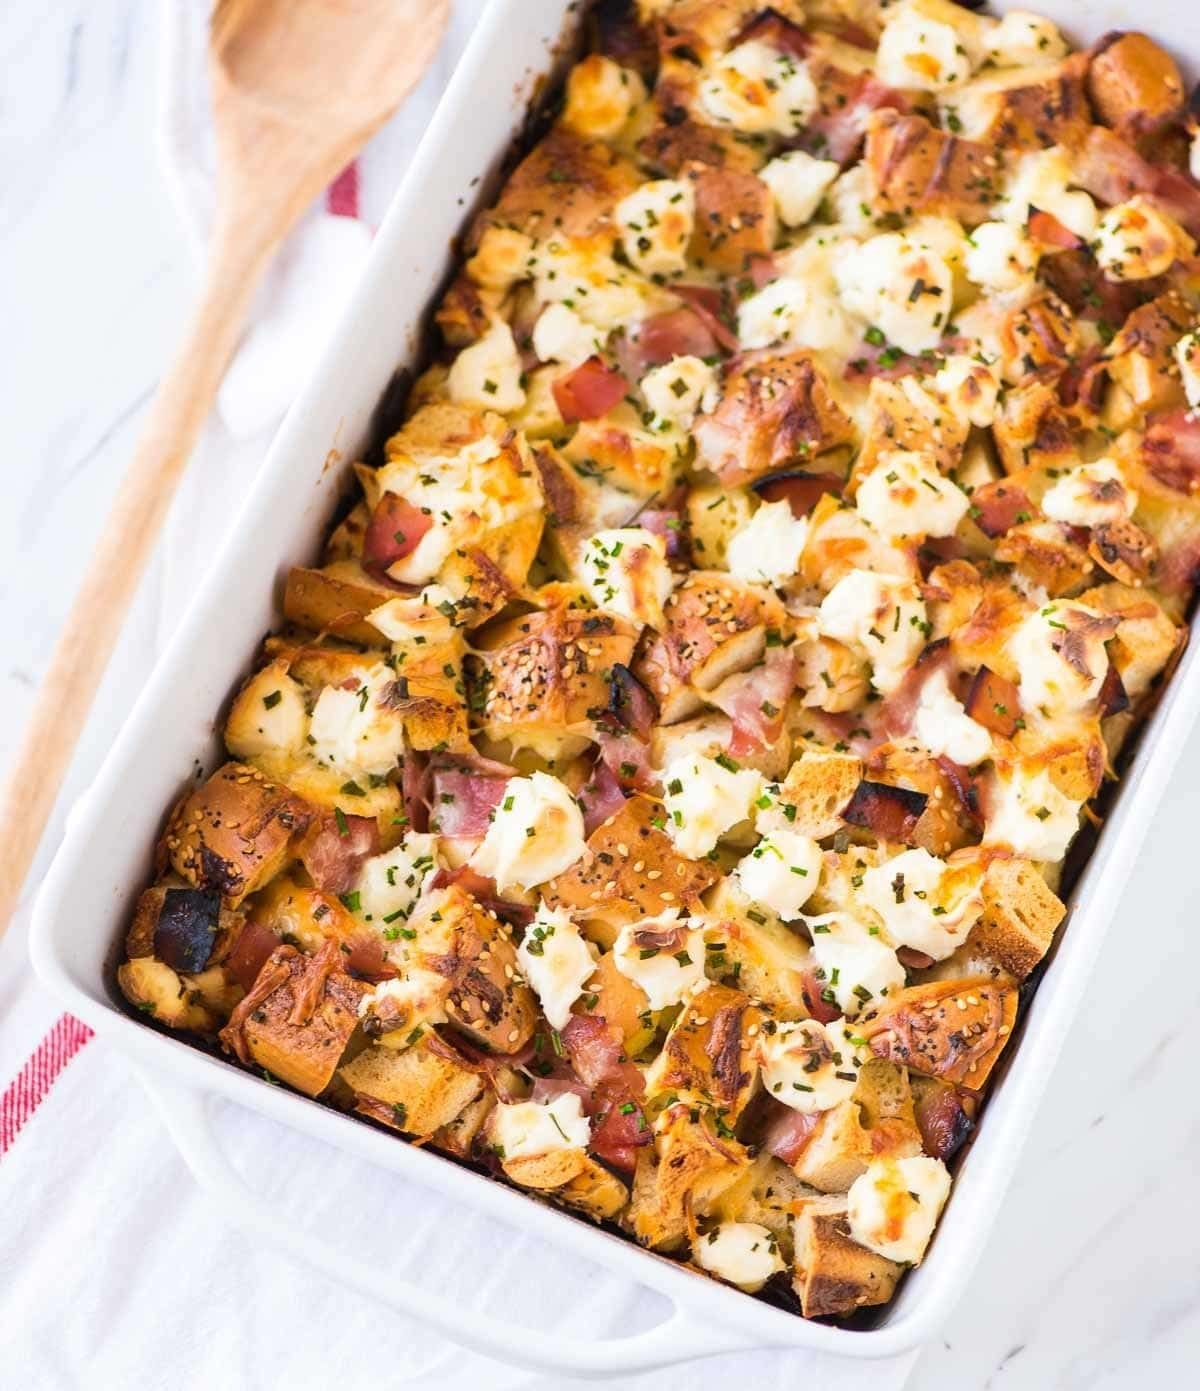 Top this casserole with some lox, tomato, and red onion if you want to get really fancy. Get the recipe.